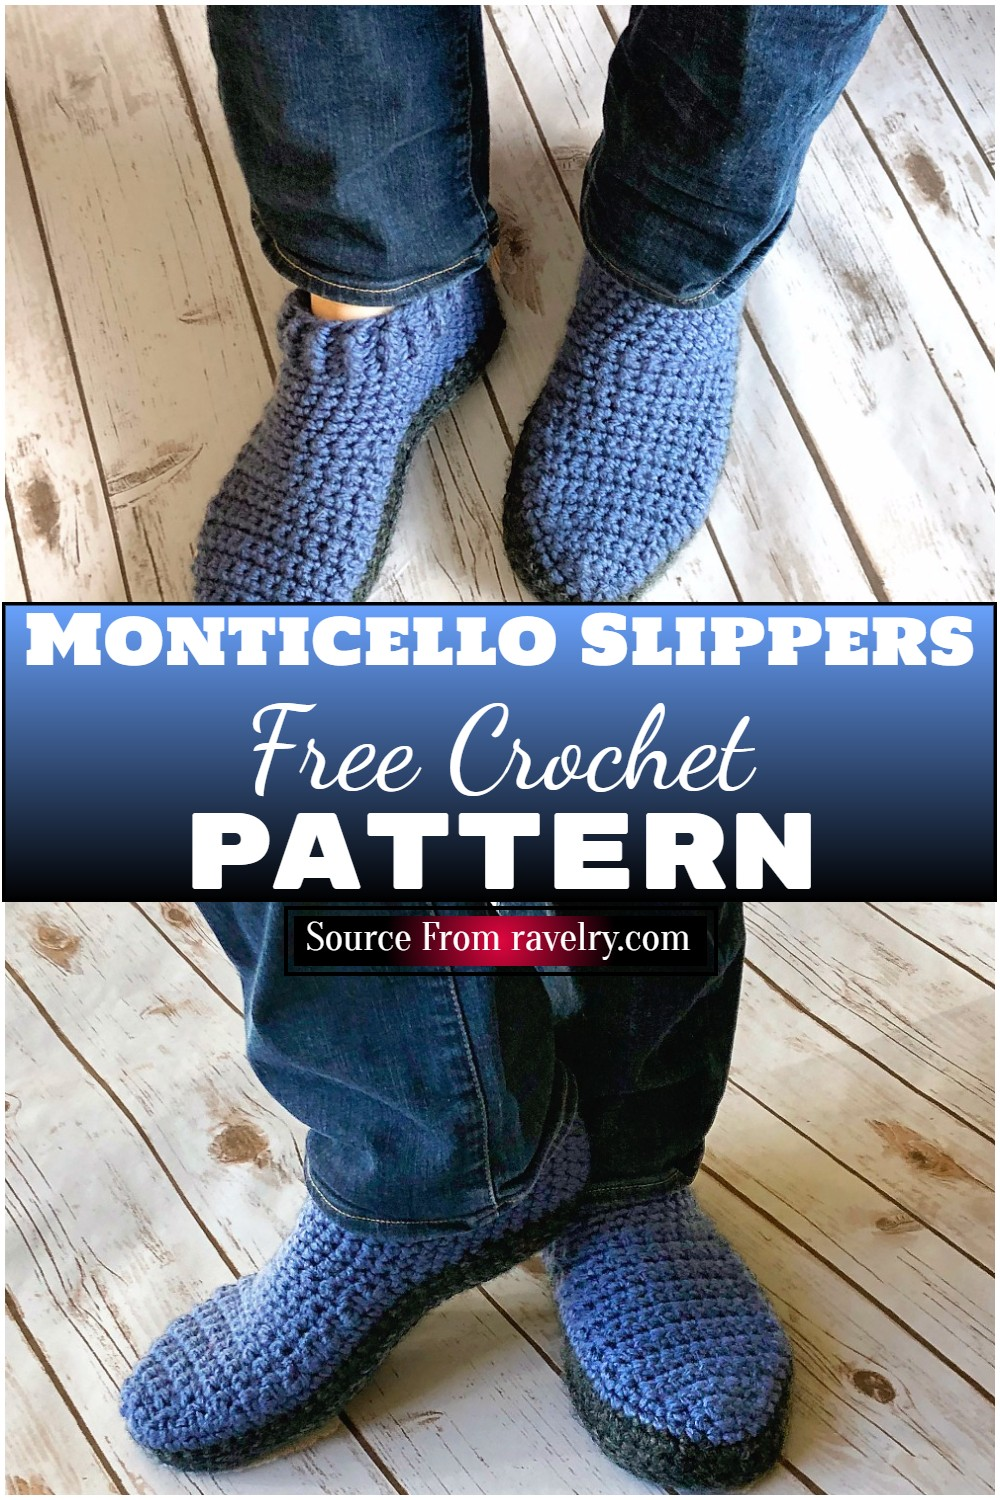 Free Crochet Monticello Slippers Pattern